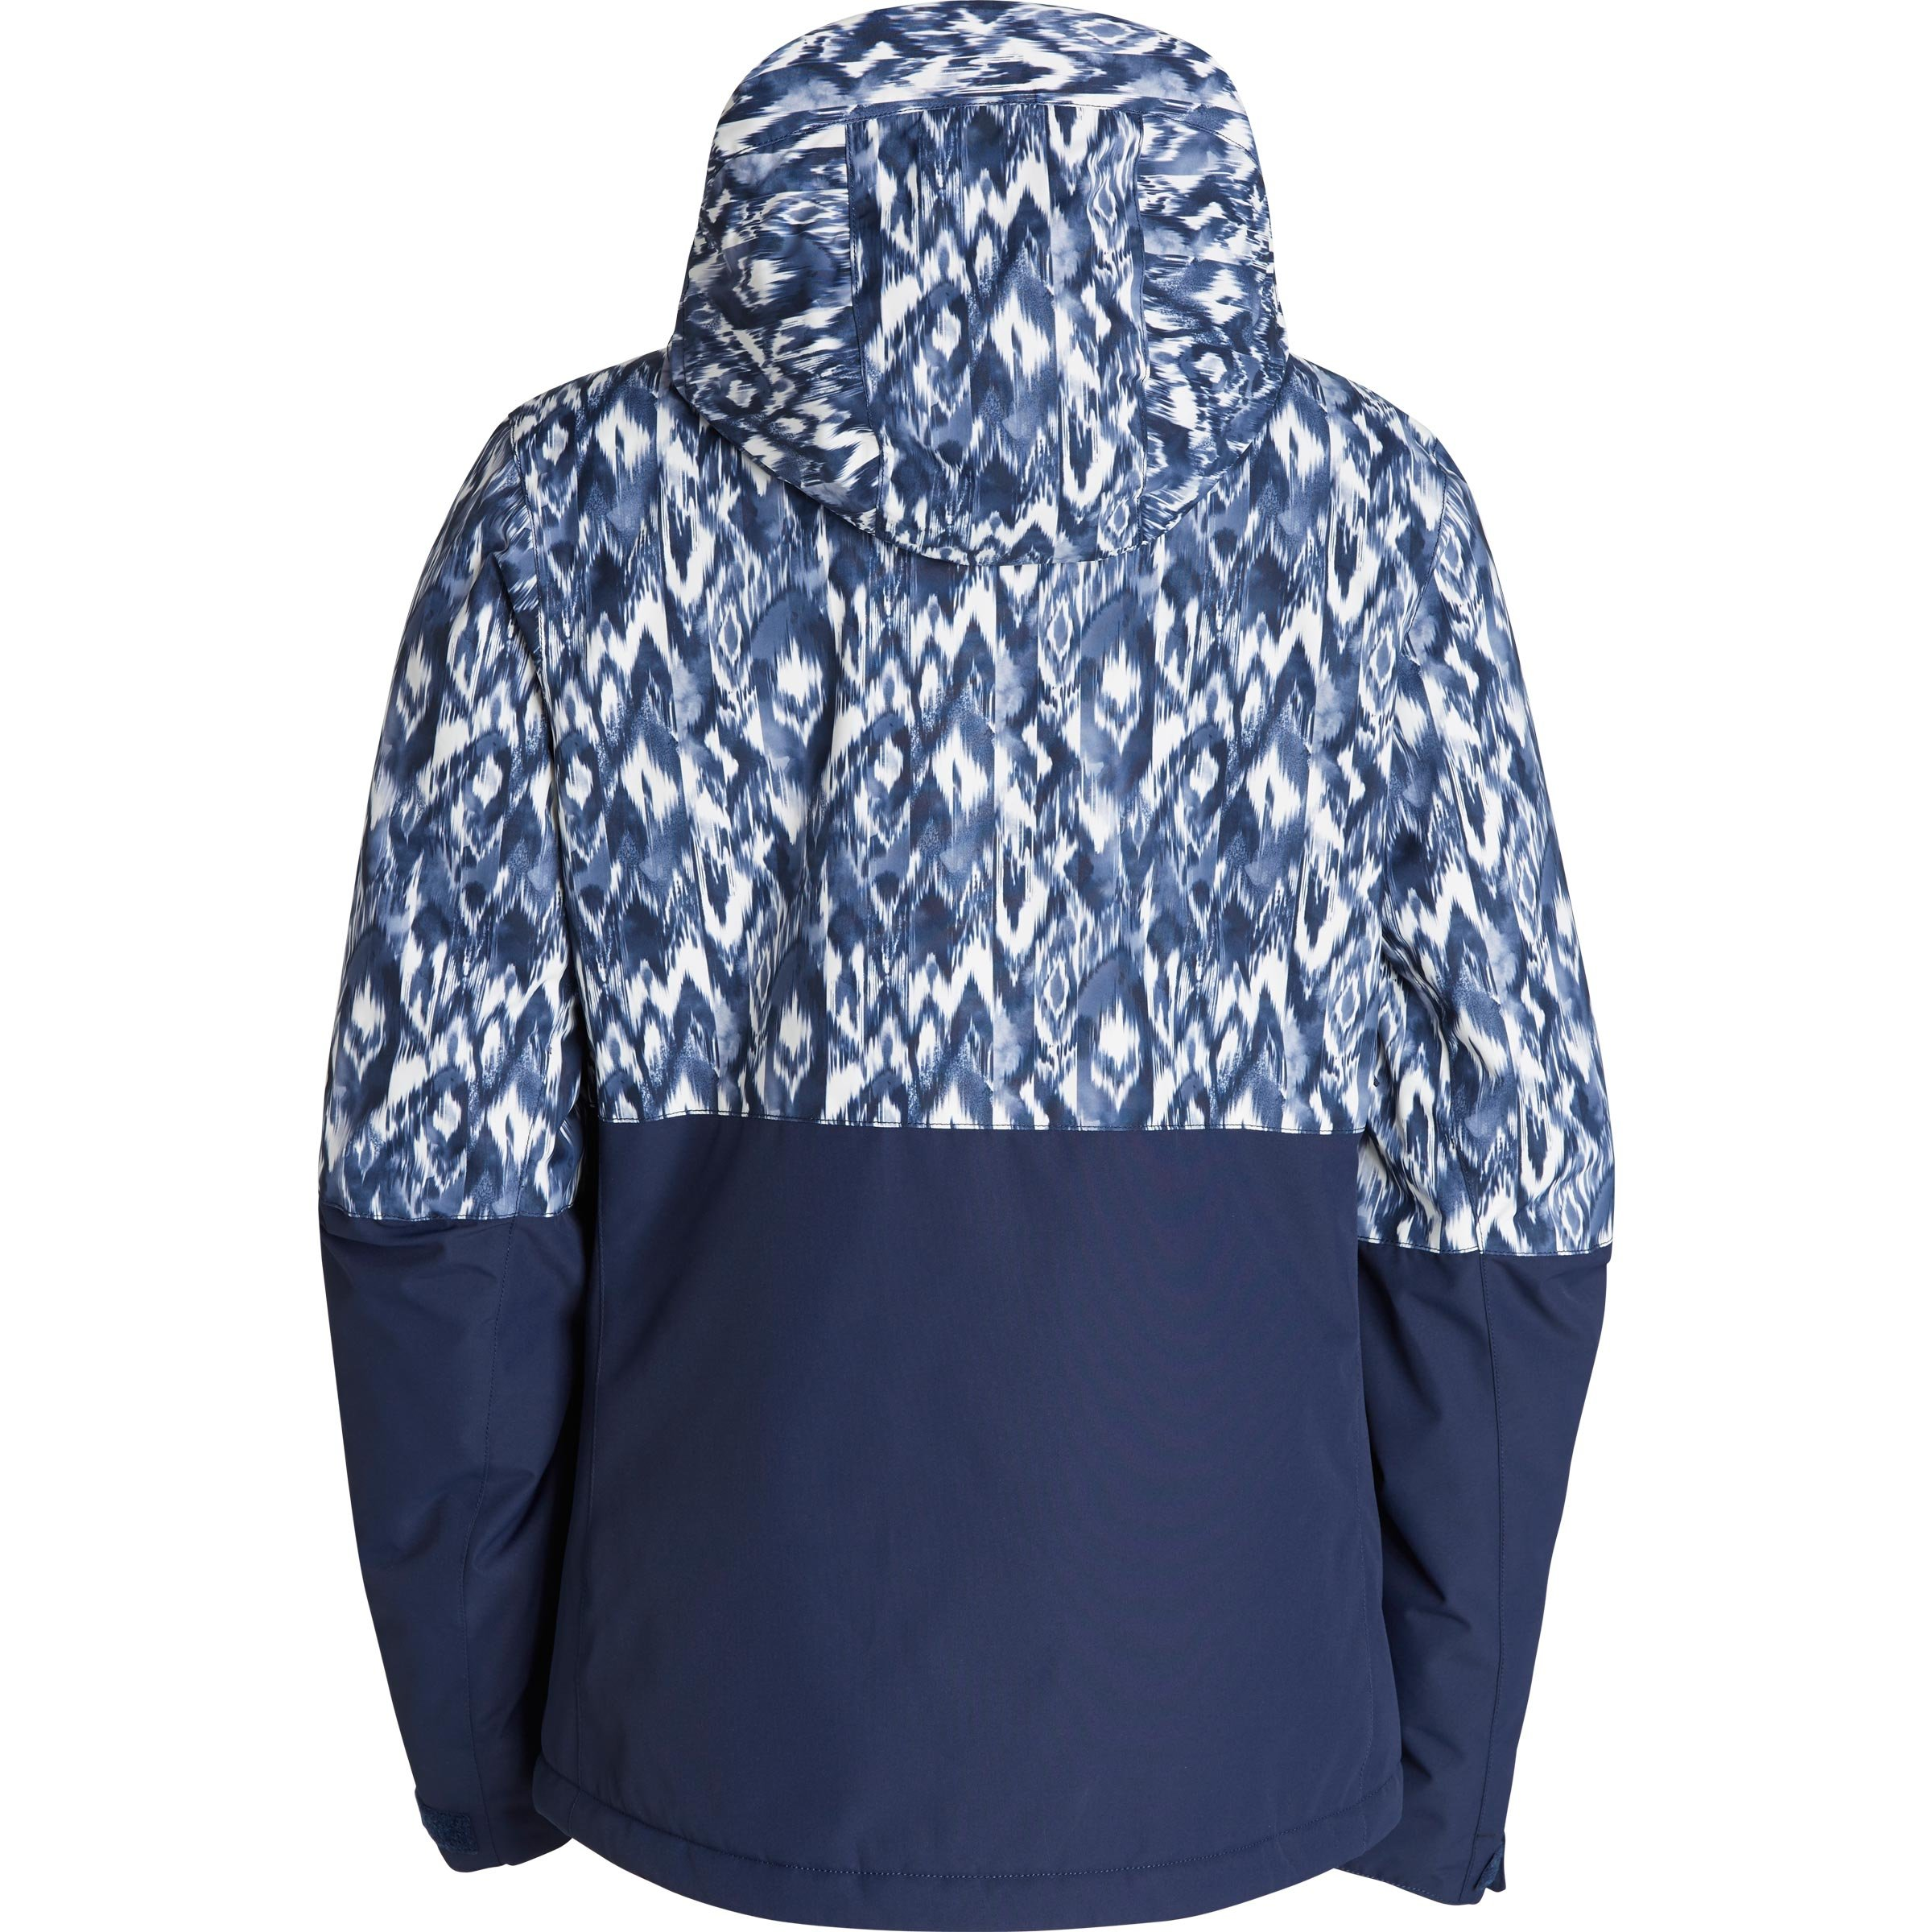 Billabong Junior's Akira Printed Snow Jacket, Peacoat, L by Billabong (Image #2)